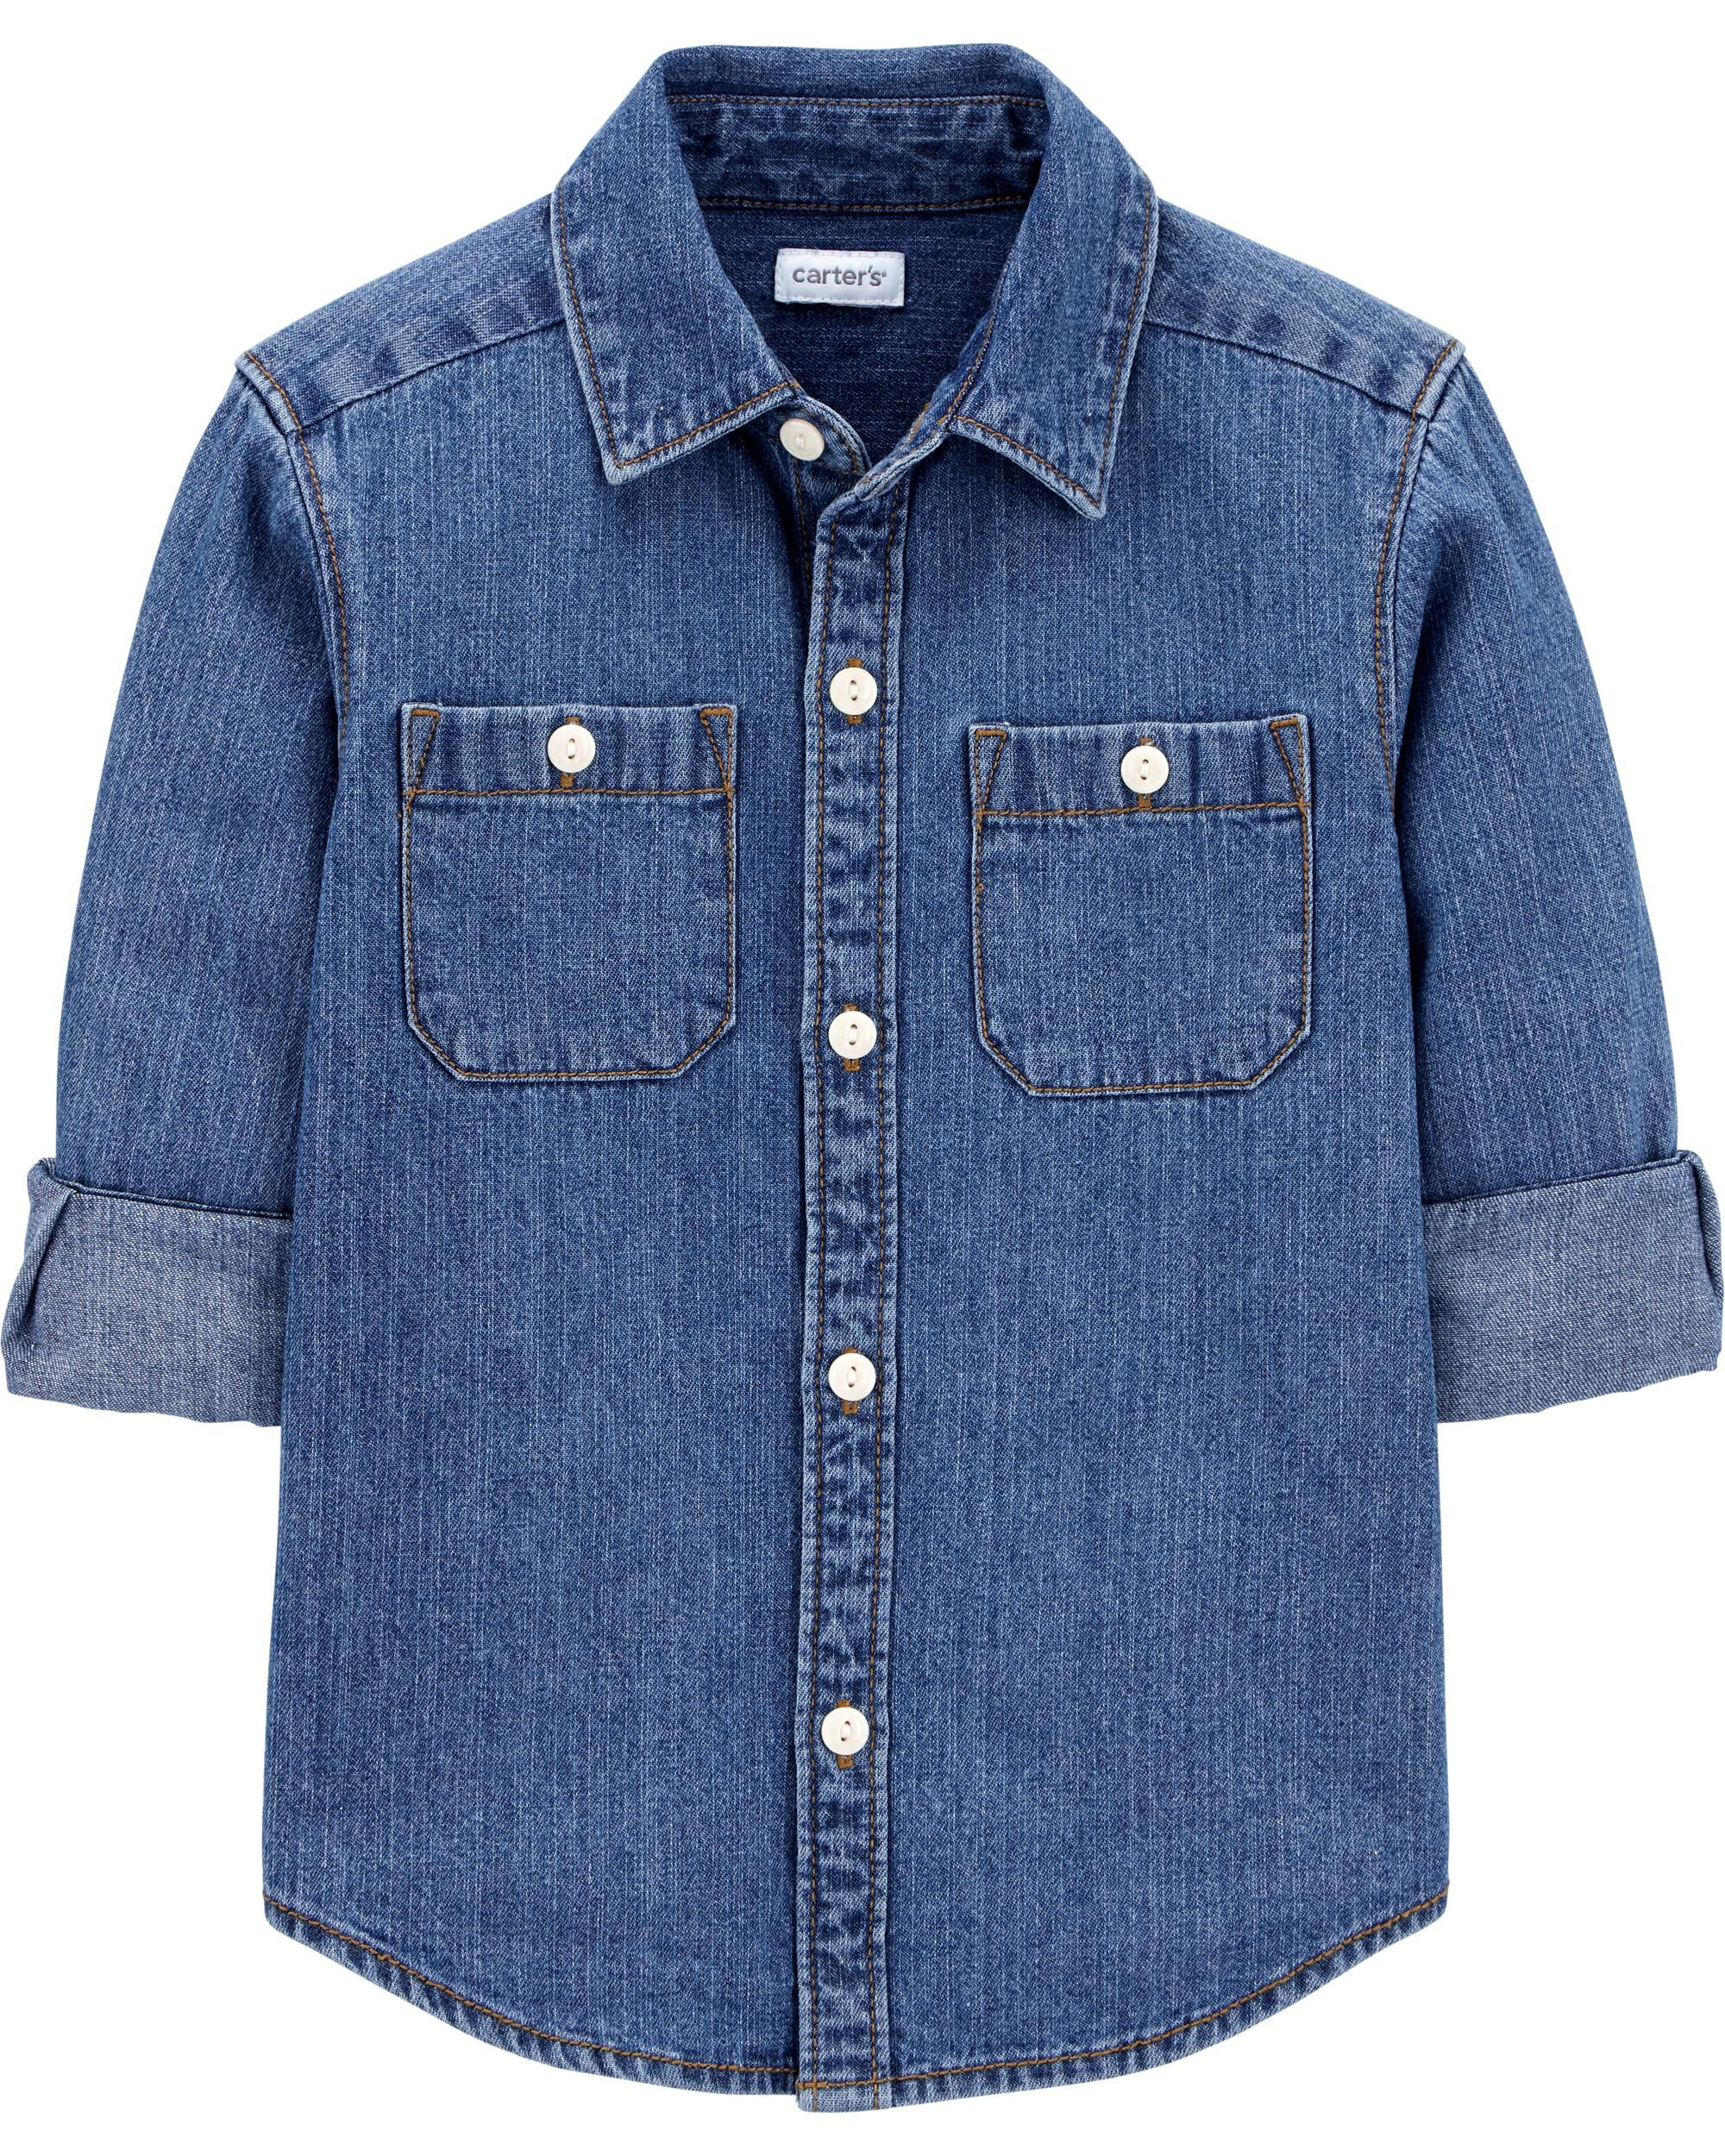 Carters Chambray Button-Front Shirt